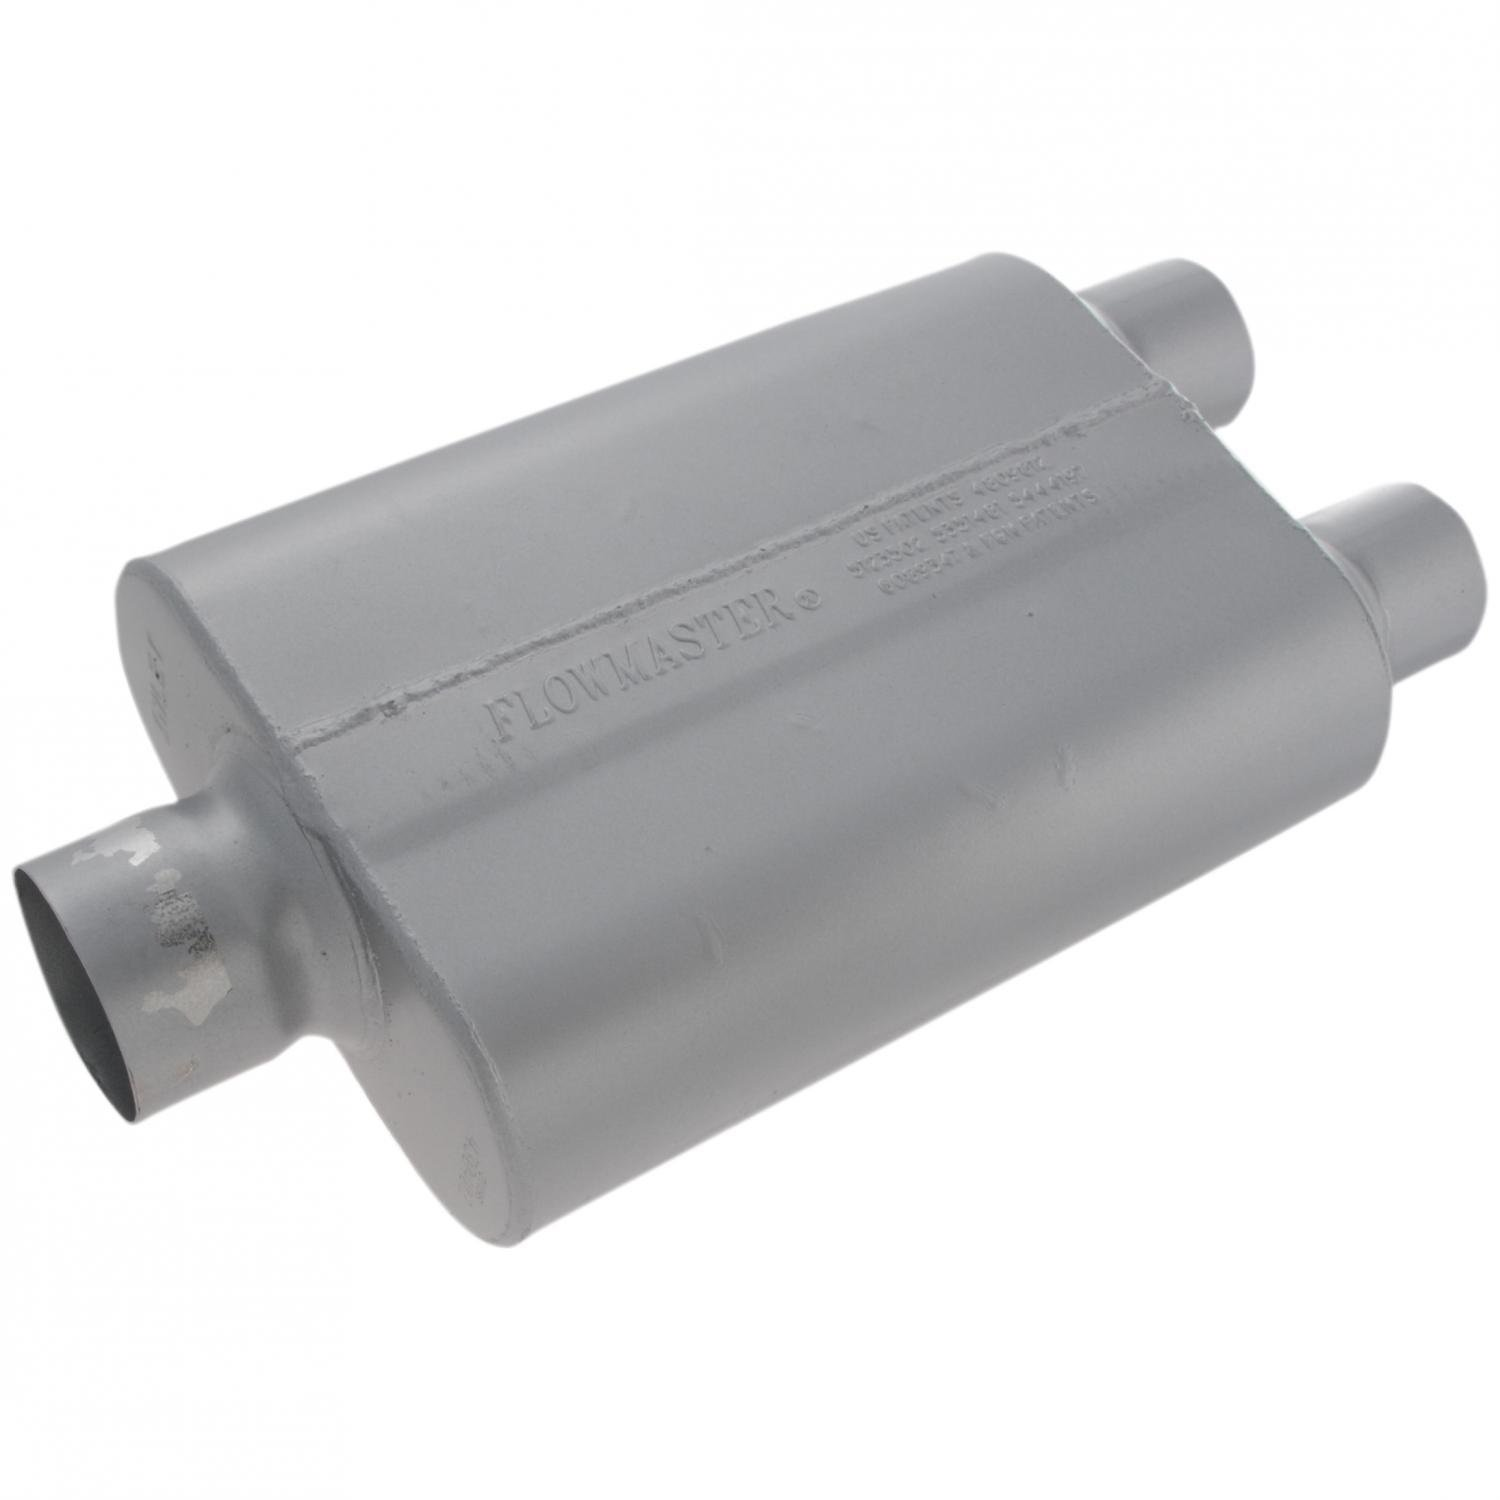 Flowmaster 430402 40 Series Muffler - 3.00 Center IN / 2.50 Dual OUT - Aggressive Sound by Flowmaster (Image #2)